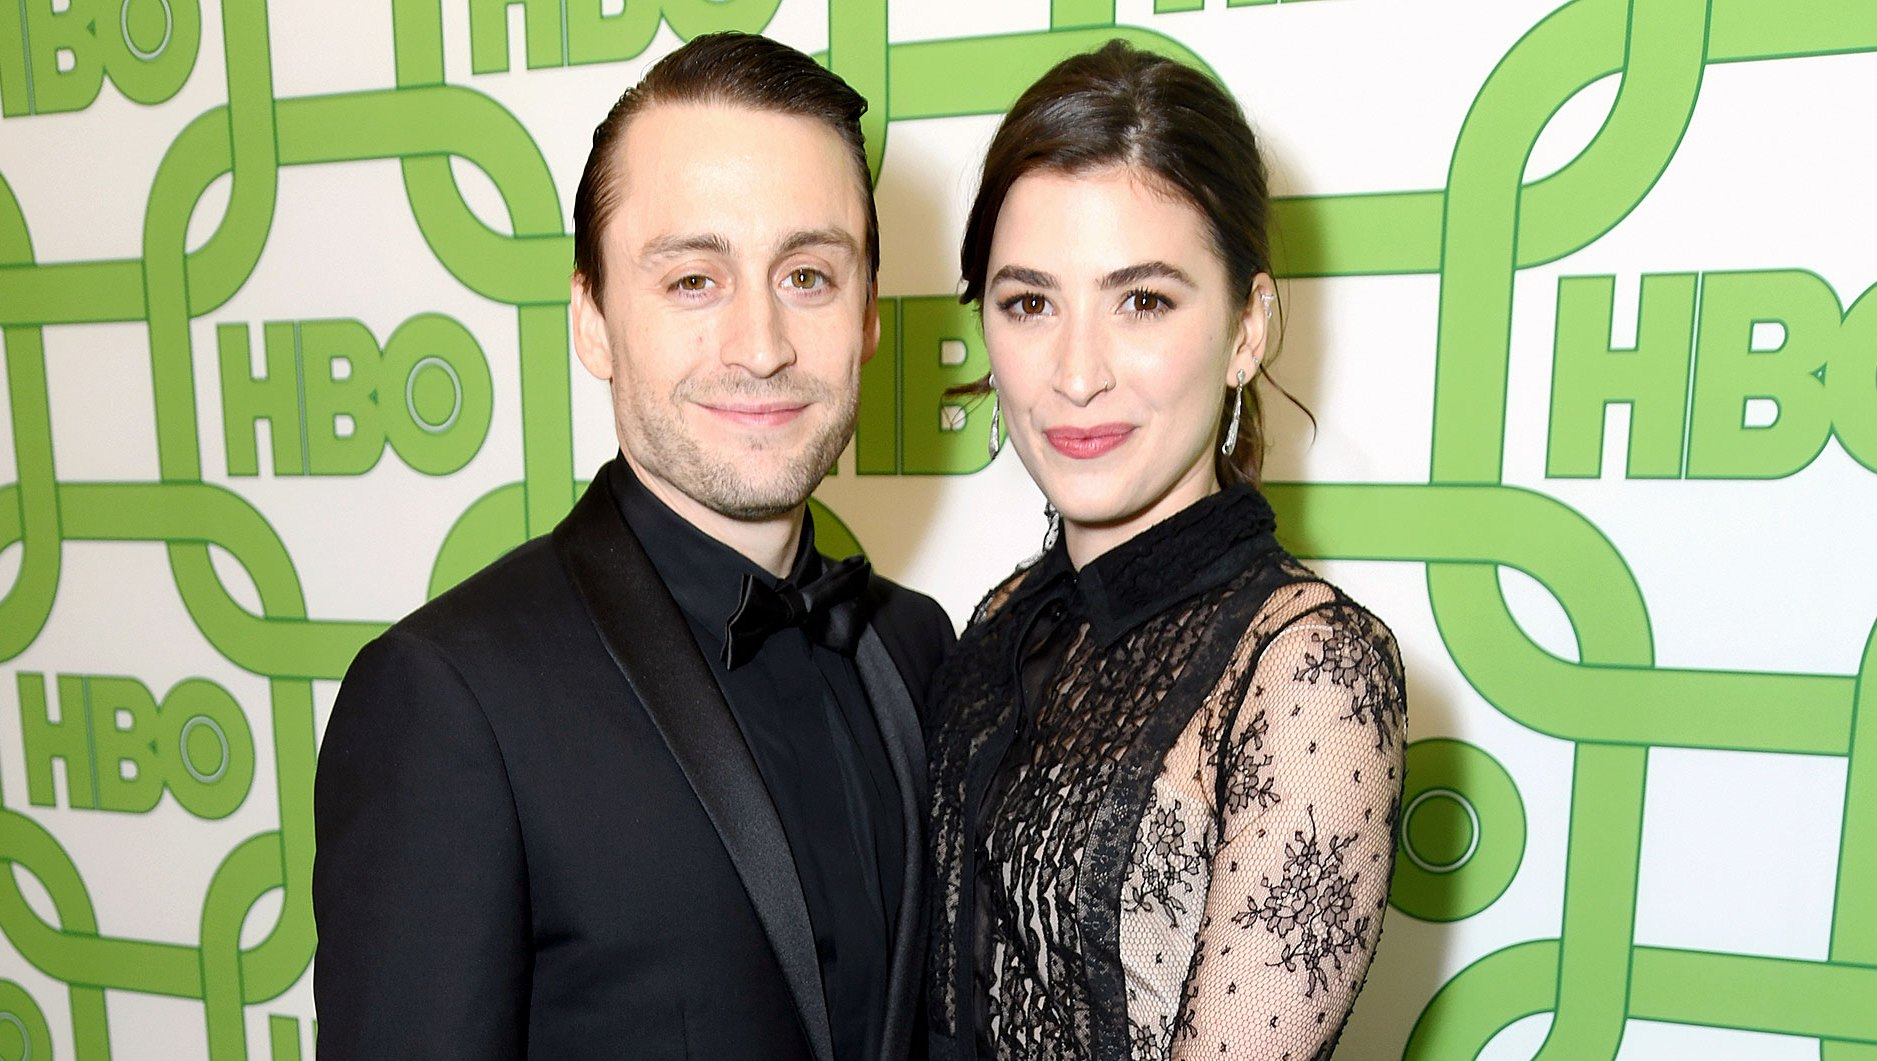 Kieran Culkin Jazz Charton Pregnant First Child